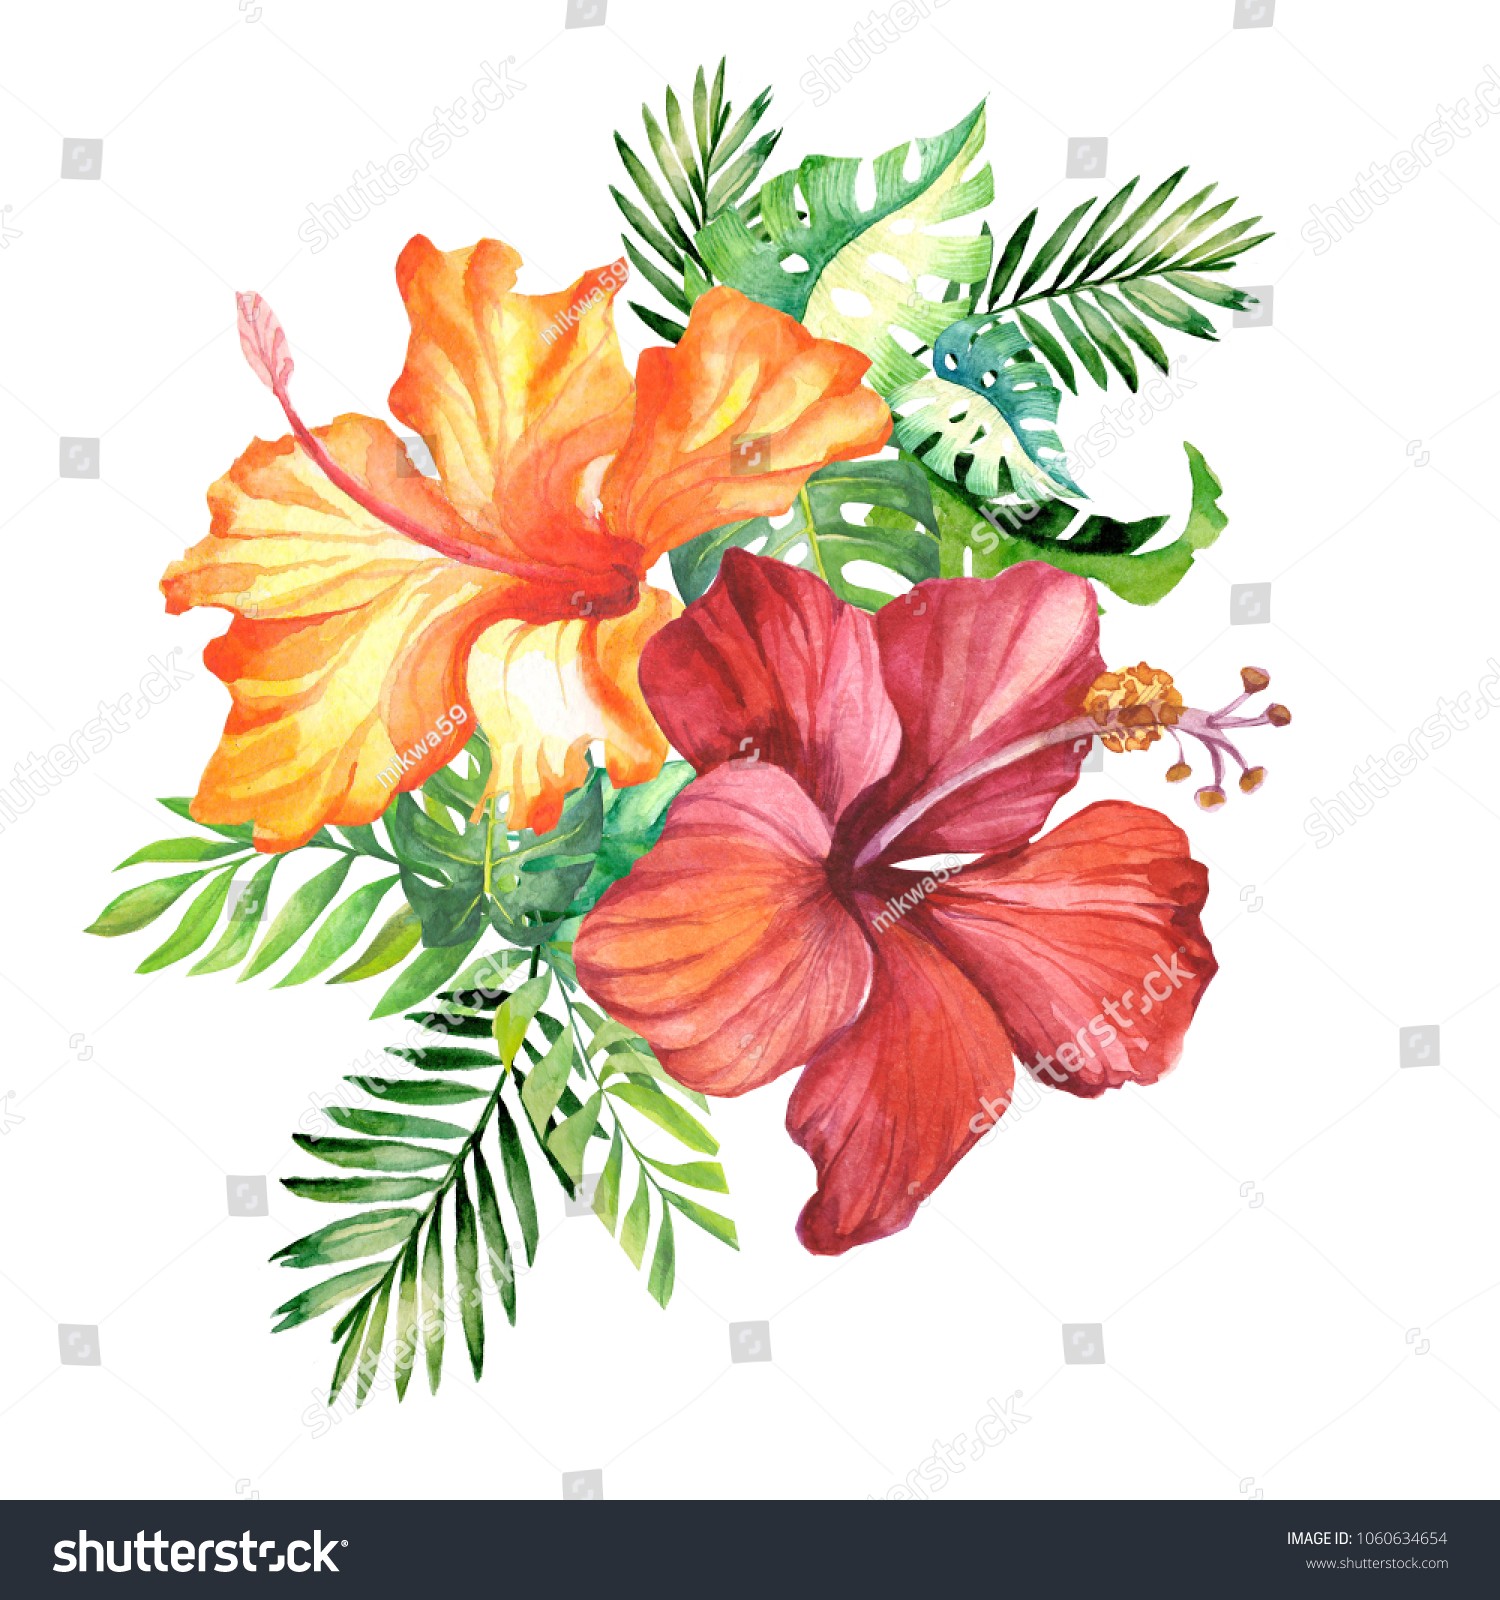 Hibiscus And Palm Leaves Watercolor Illustration Ez Canvas